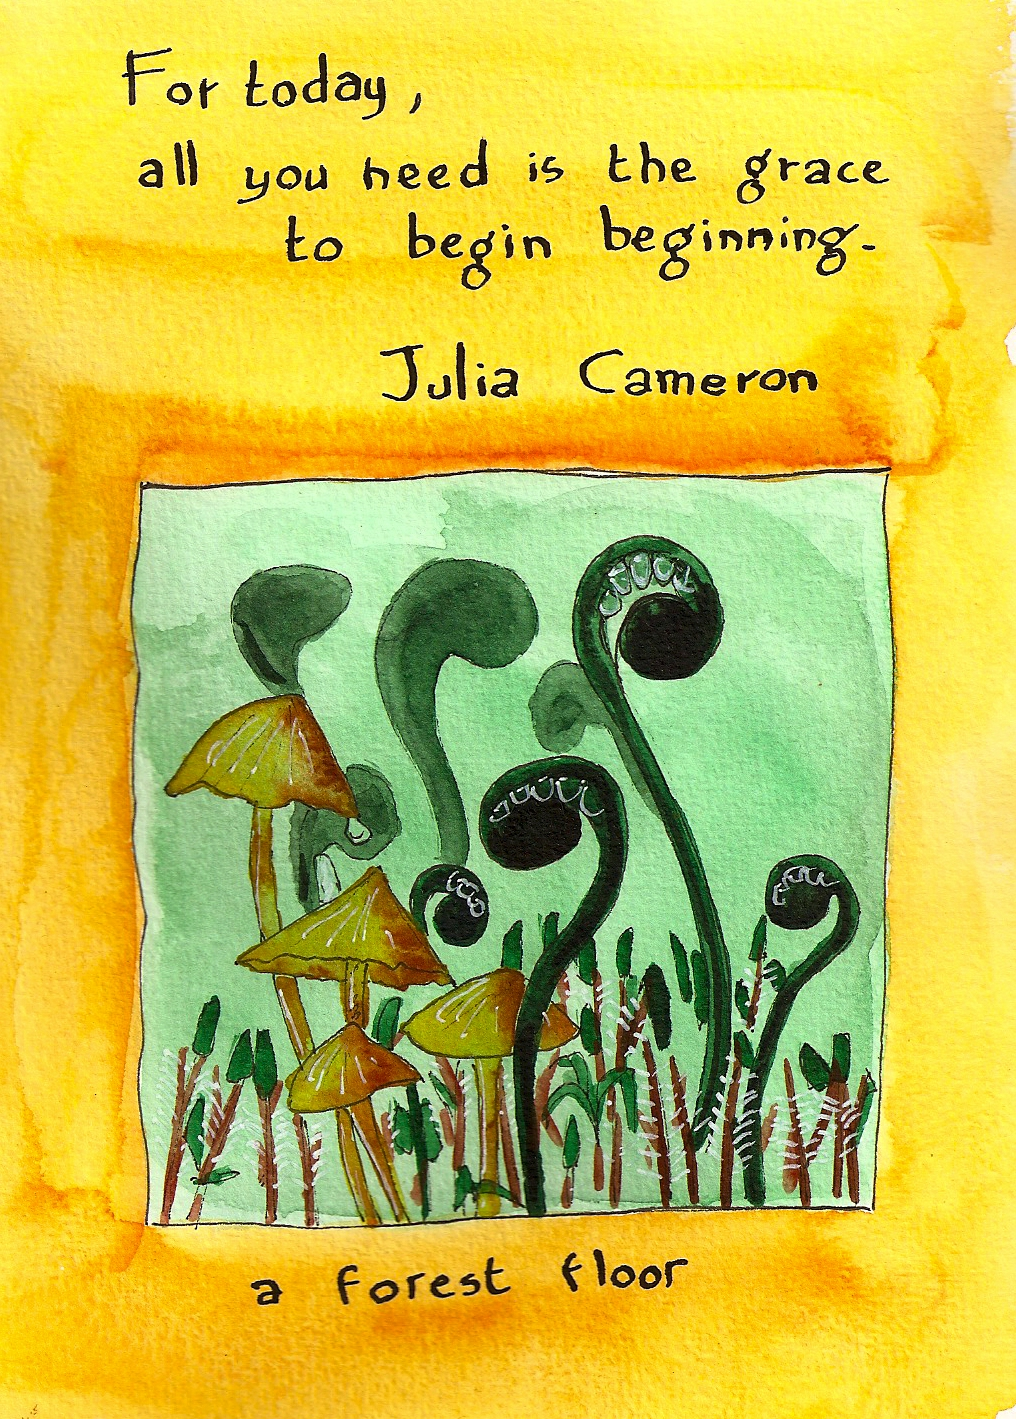 Julia Cameron's quote #8